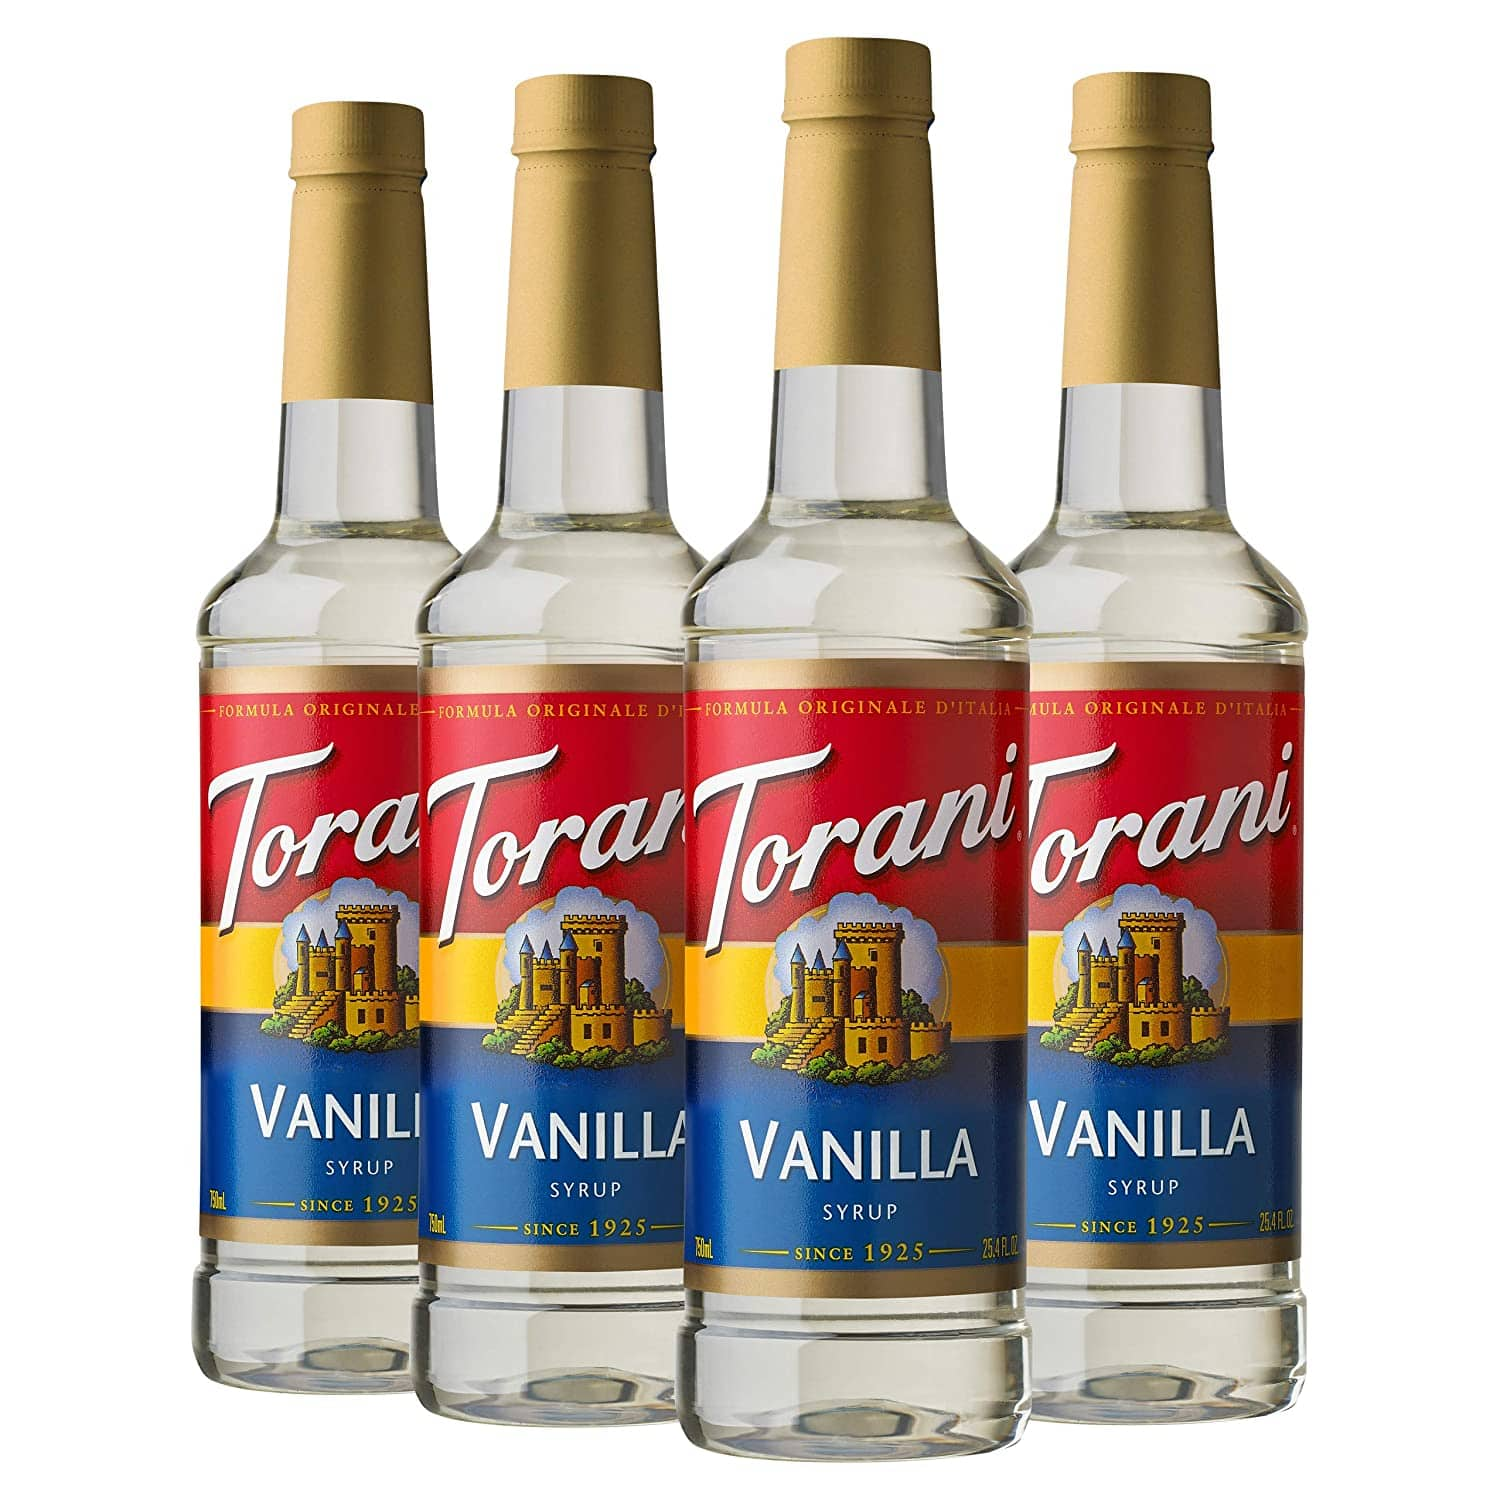 Torani Syrup, Vanilla, 25.4 Ounces (Pack of 4) $15.08